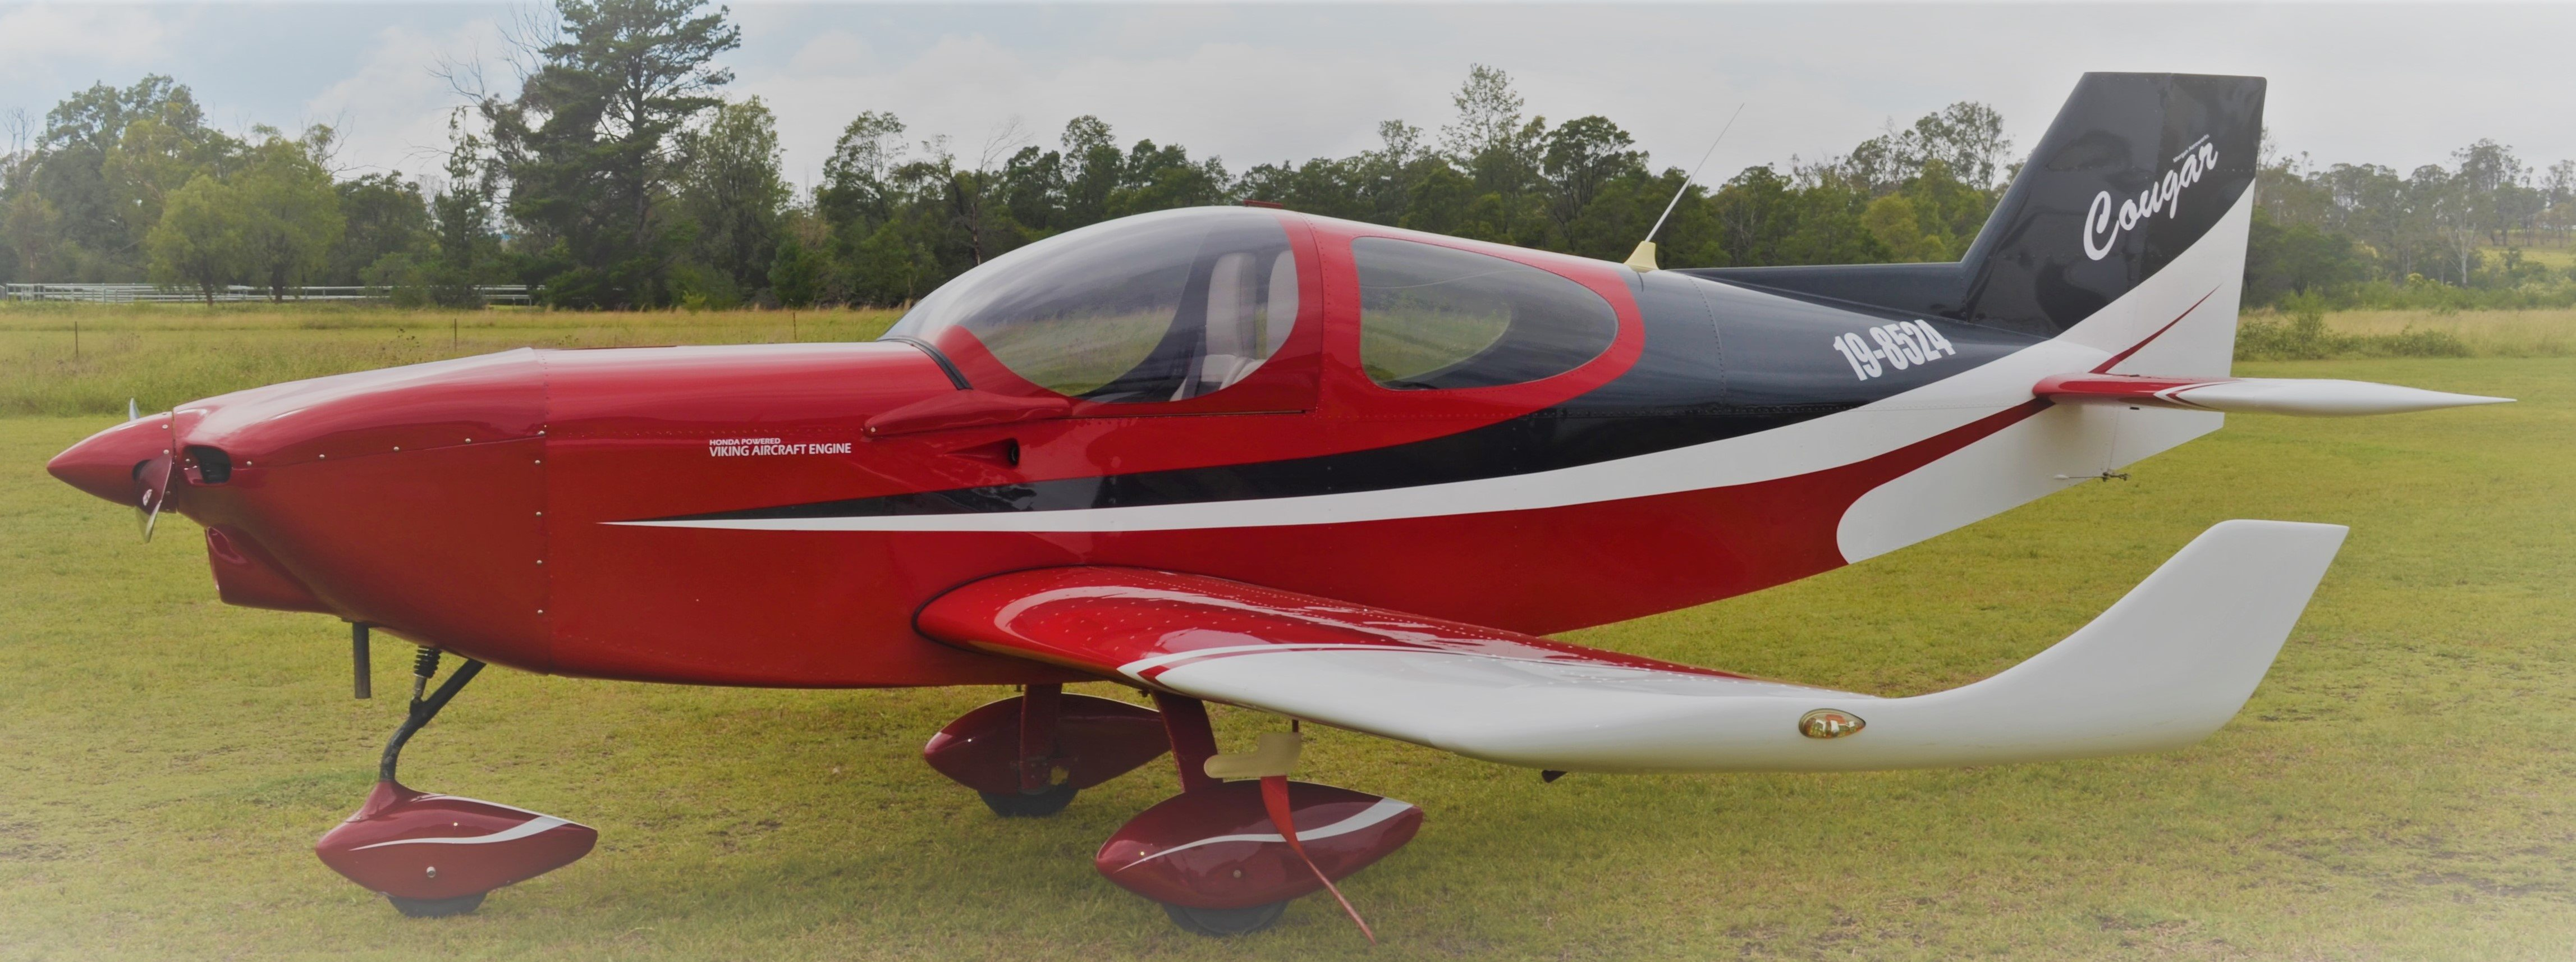 2014 Wedgetail Aircraft Cougar (Formally Morgan Aeroworks)